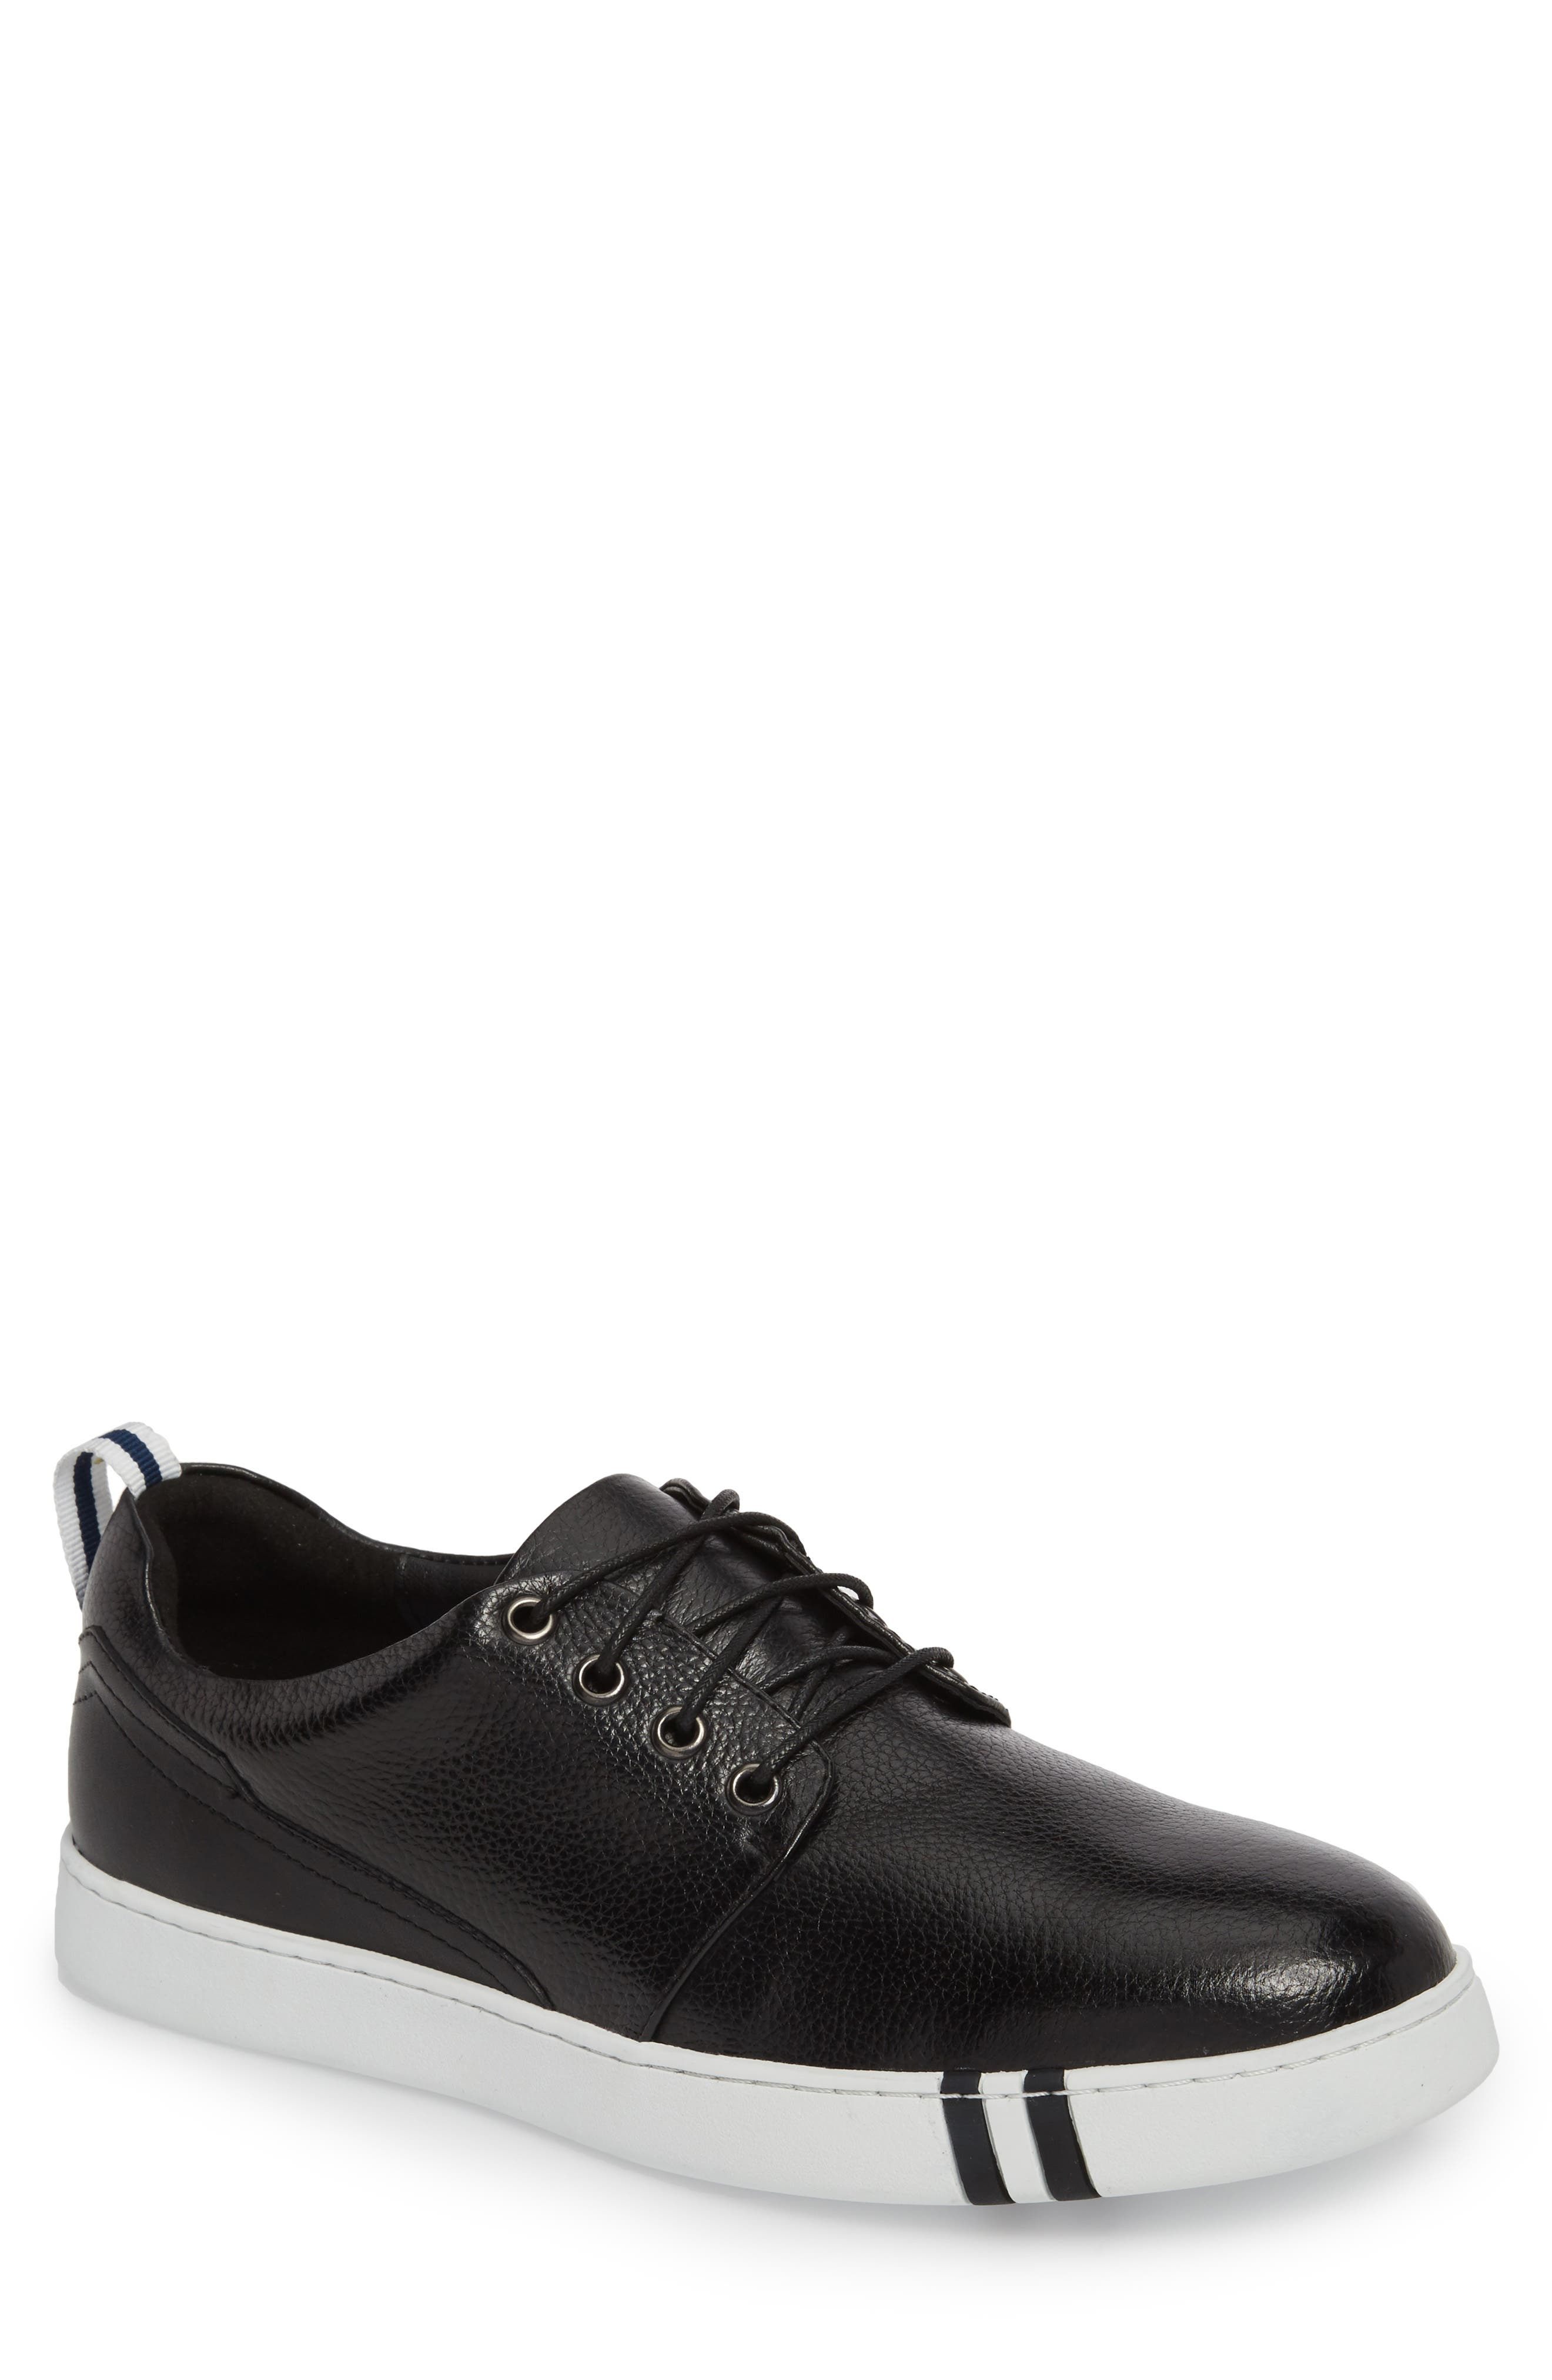 Kings Low Top Sneaker,                         Main,                         color, 001